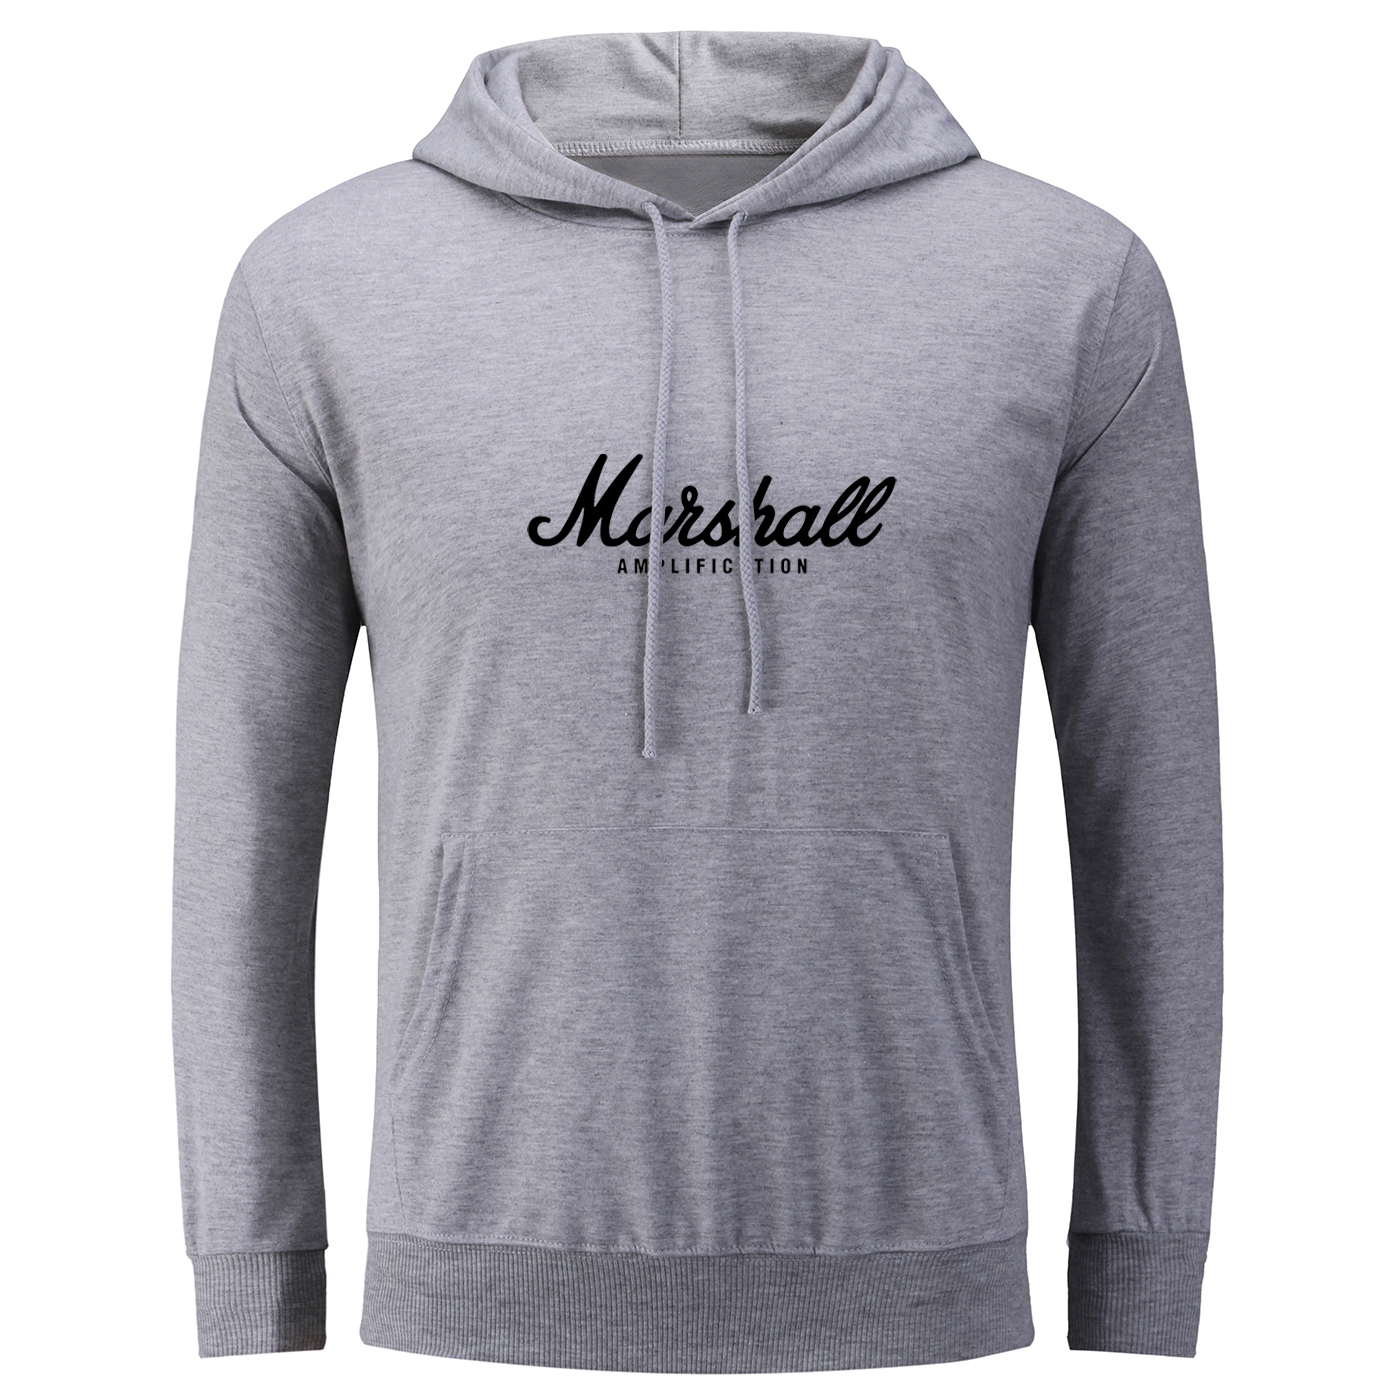 iDzn Hip Hop Harajuku Womens Hoodies MARSHALL Amps Amplifiers Amplification Guitar Symbol Graphic Printed Sweatshirts Tops S-3XL